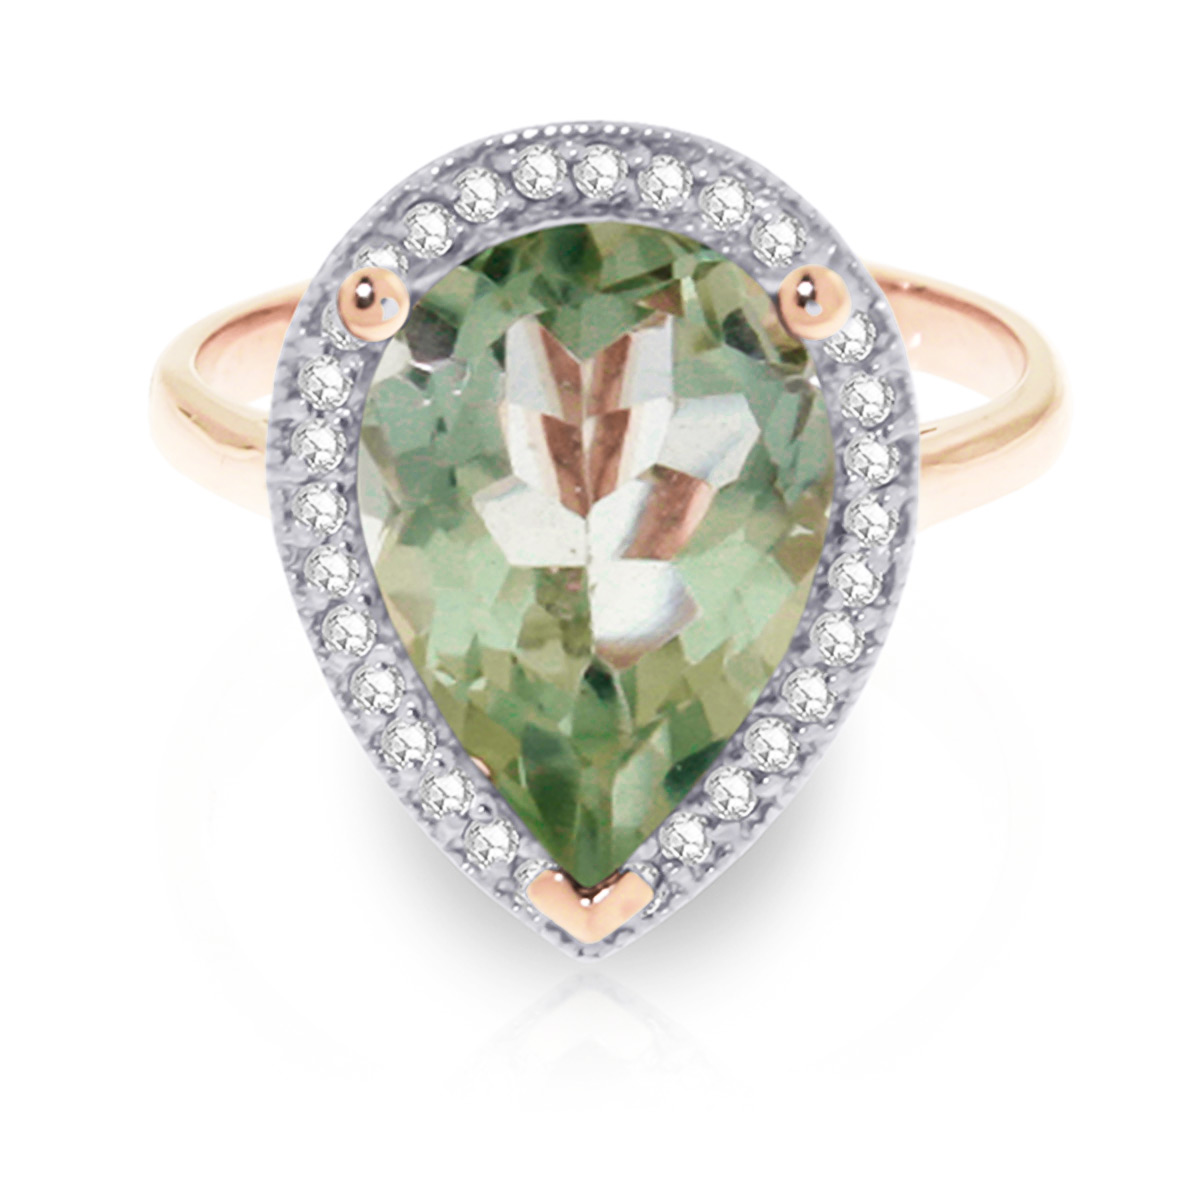 Green Amethyst and Diamond Halo Ring 3.25ct in 9ct Rose Gold